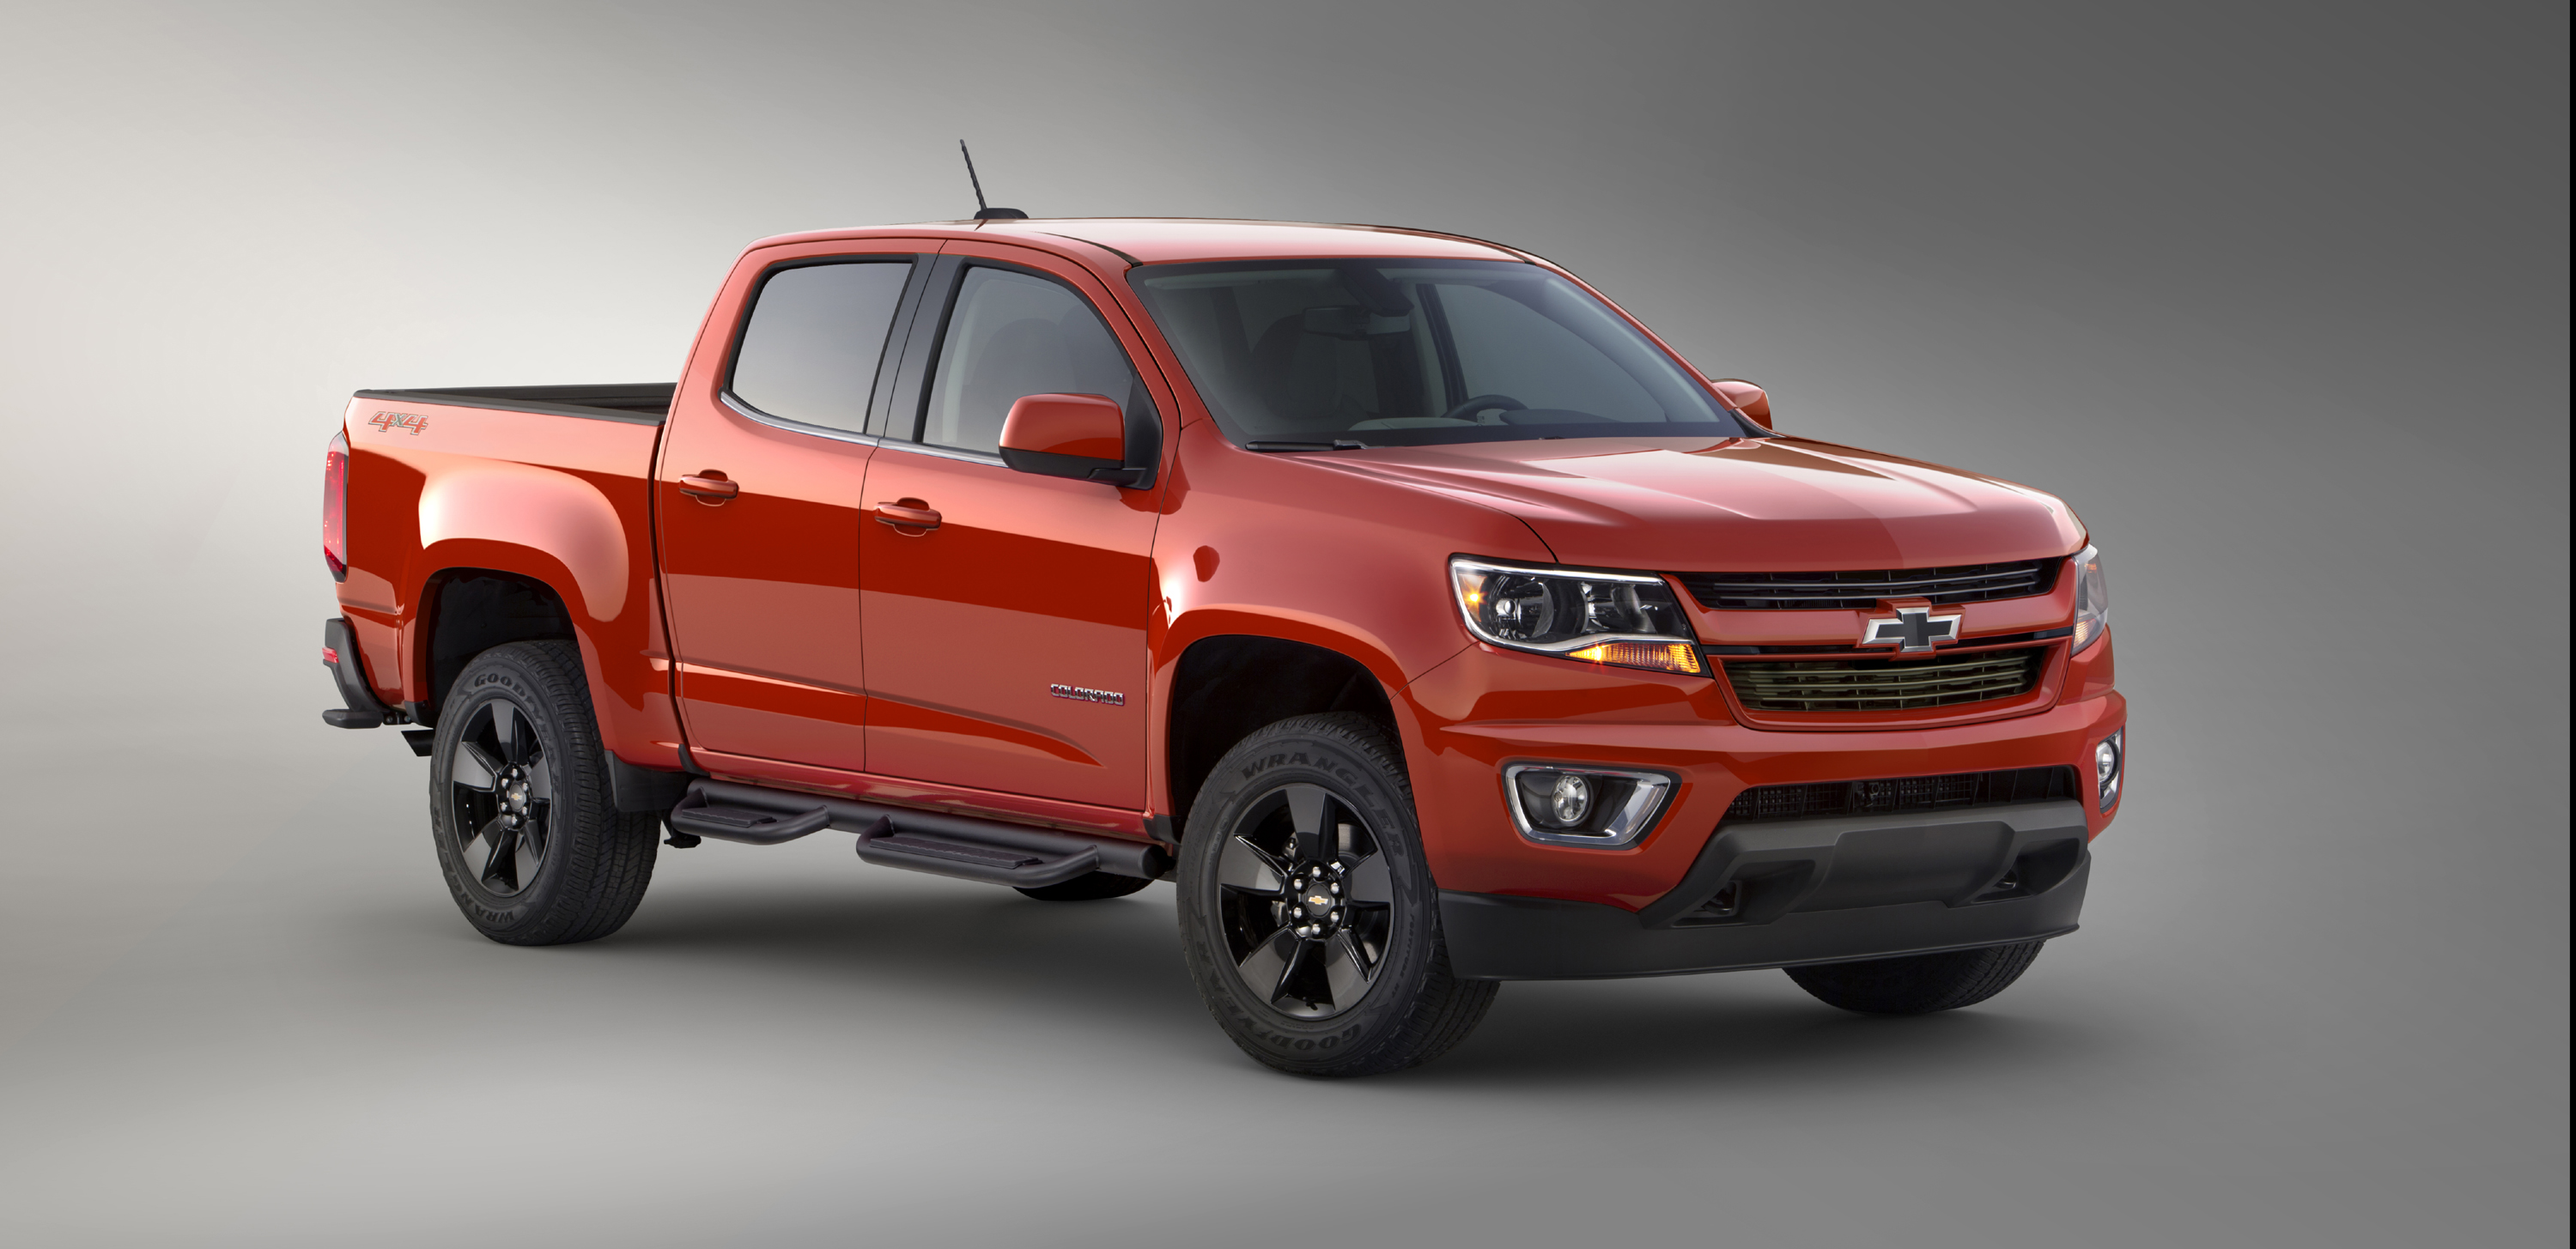 2015 chevrolet colorado gearon edition confirmed to debut at chicago auto show autoevolution. Black Bedroom Furniture Sets. Home Design Ideas